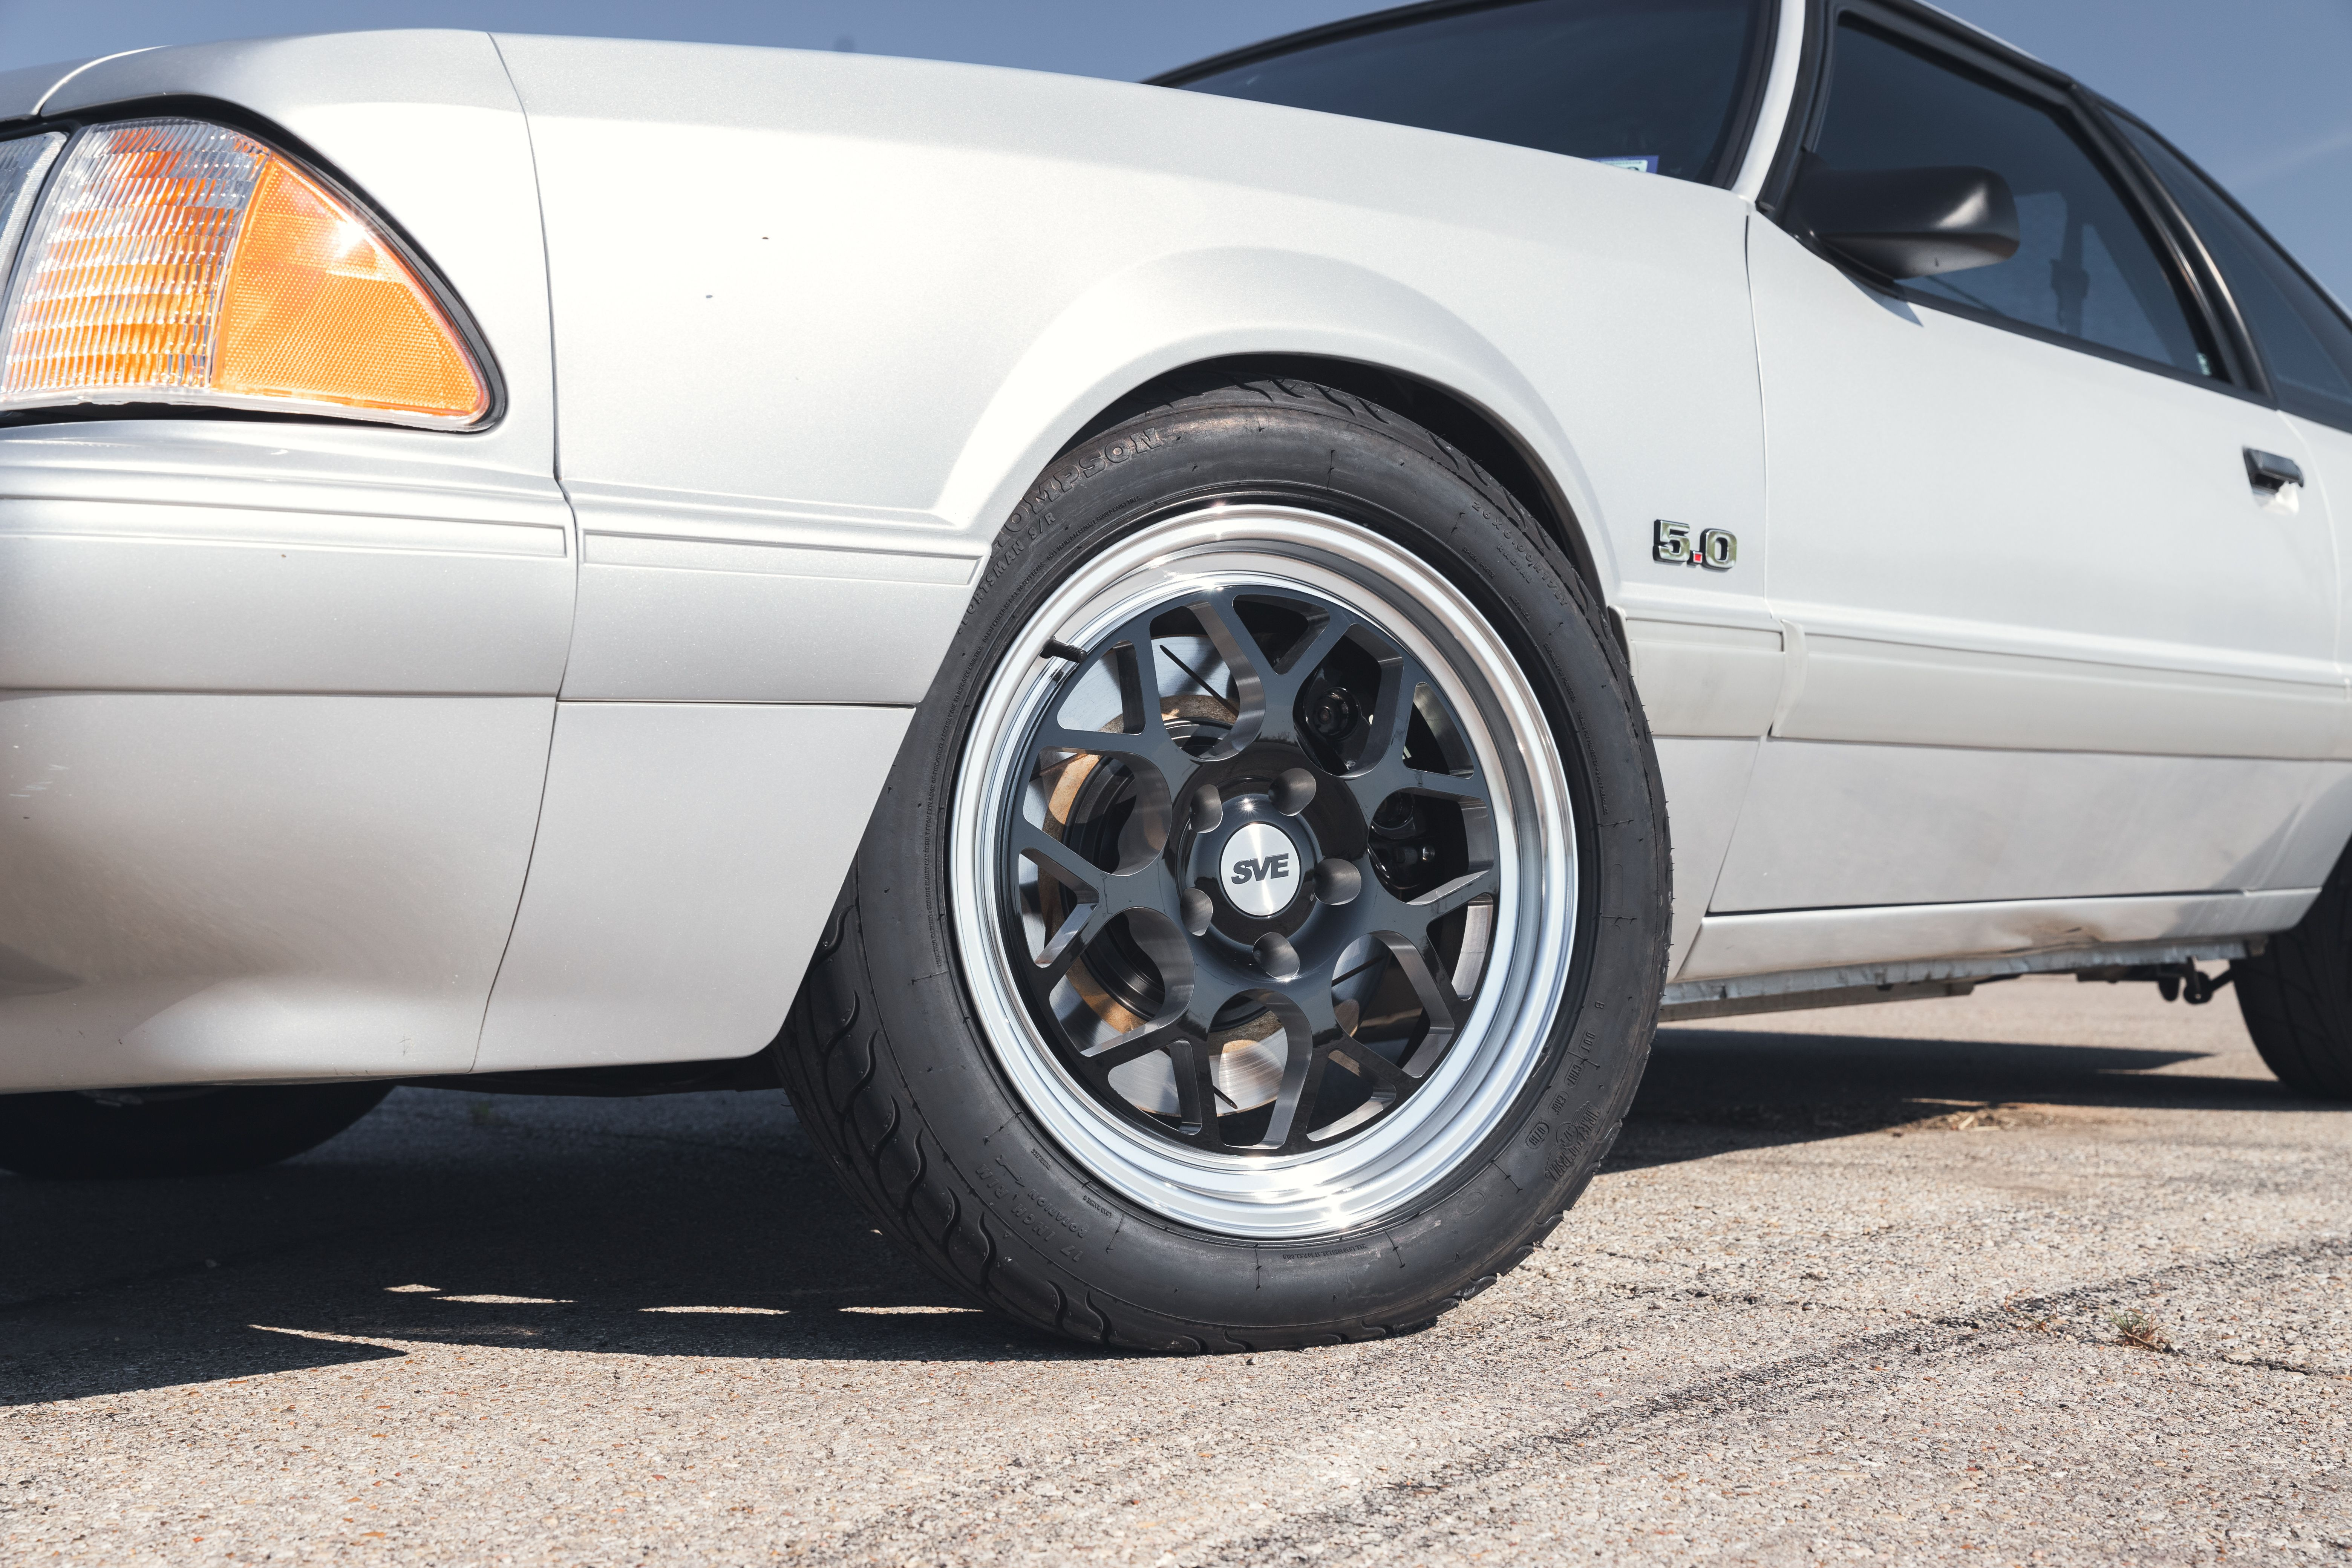 Mustang Drag Comp Wheels | SVE Product Highlight   - Mustang Drag Comp Wheels | SVE Product Highlight